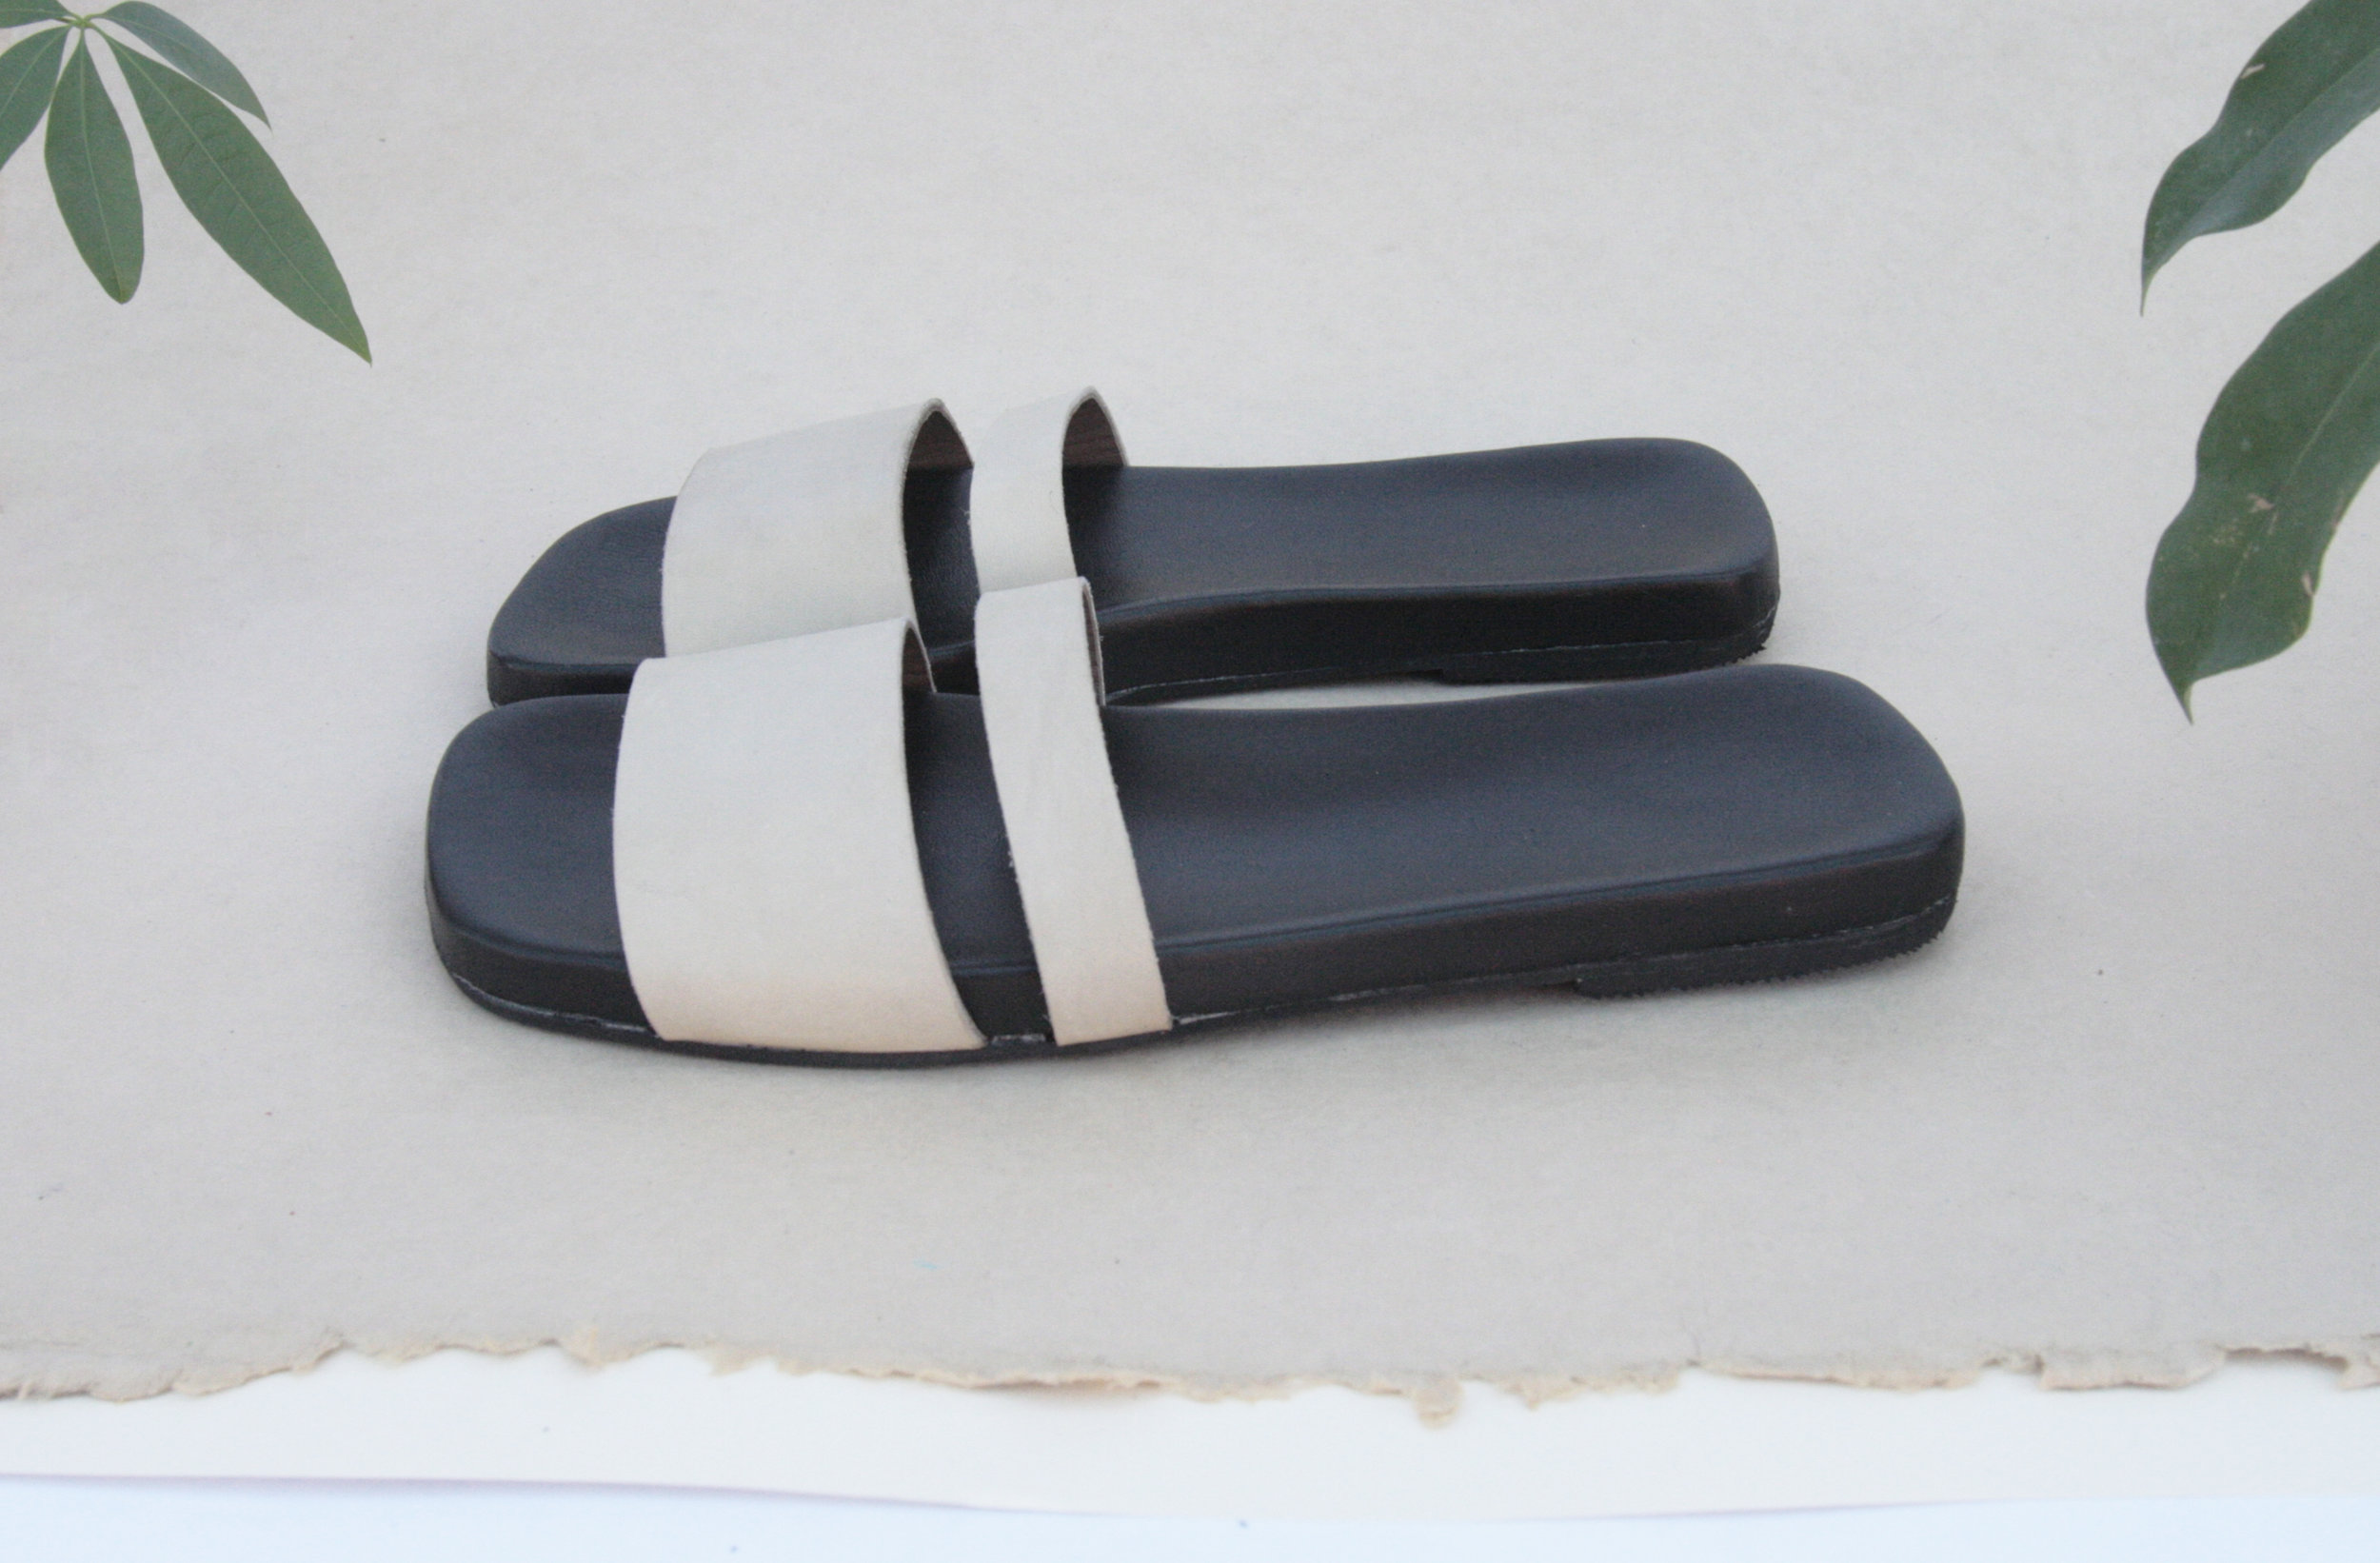 Double Slide with Square Toe - Comfortable sandals made in Brooklyn, NY